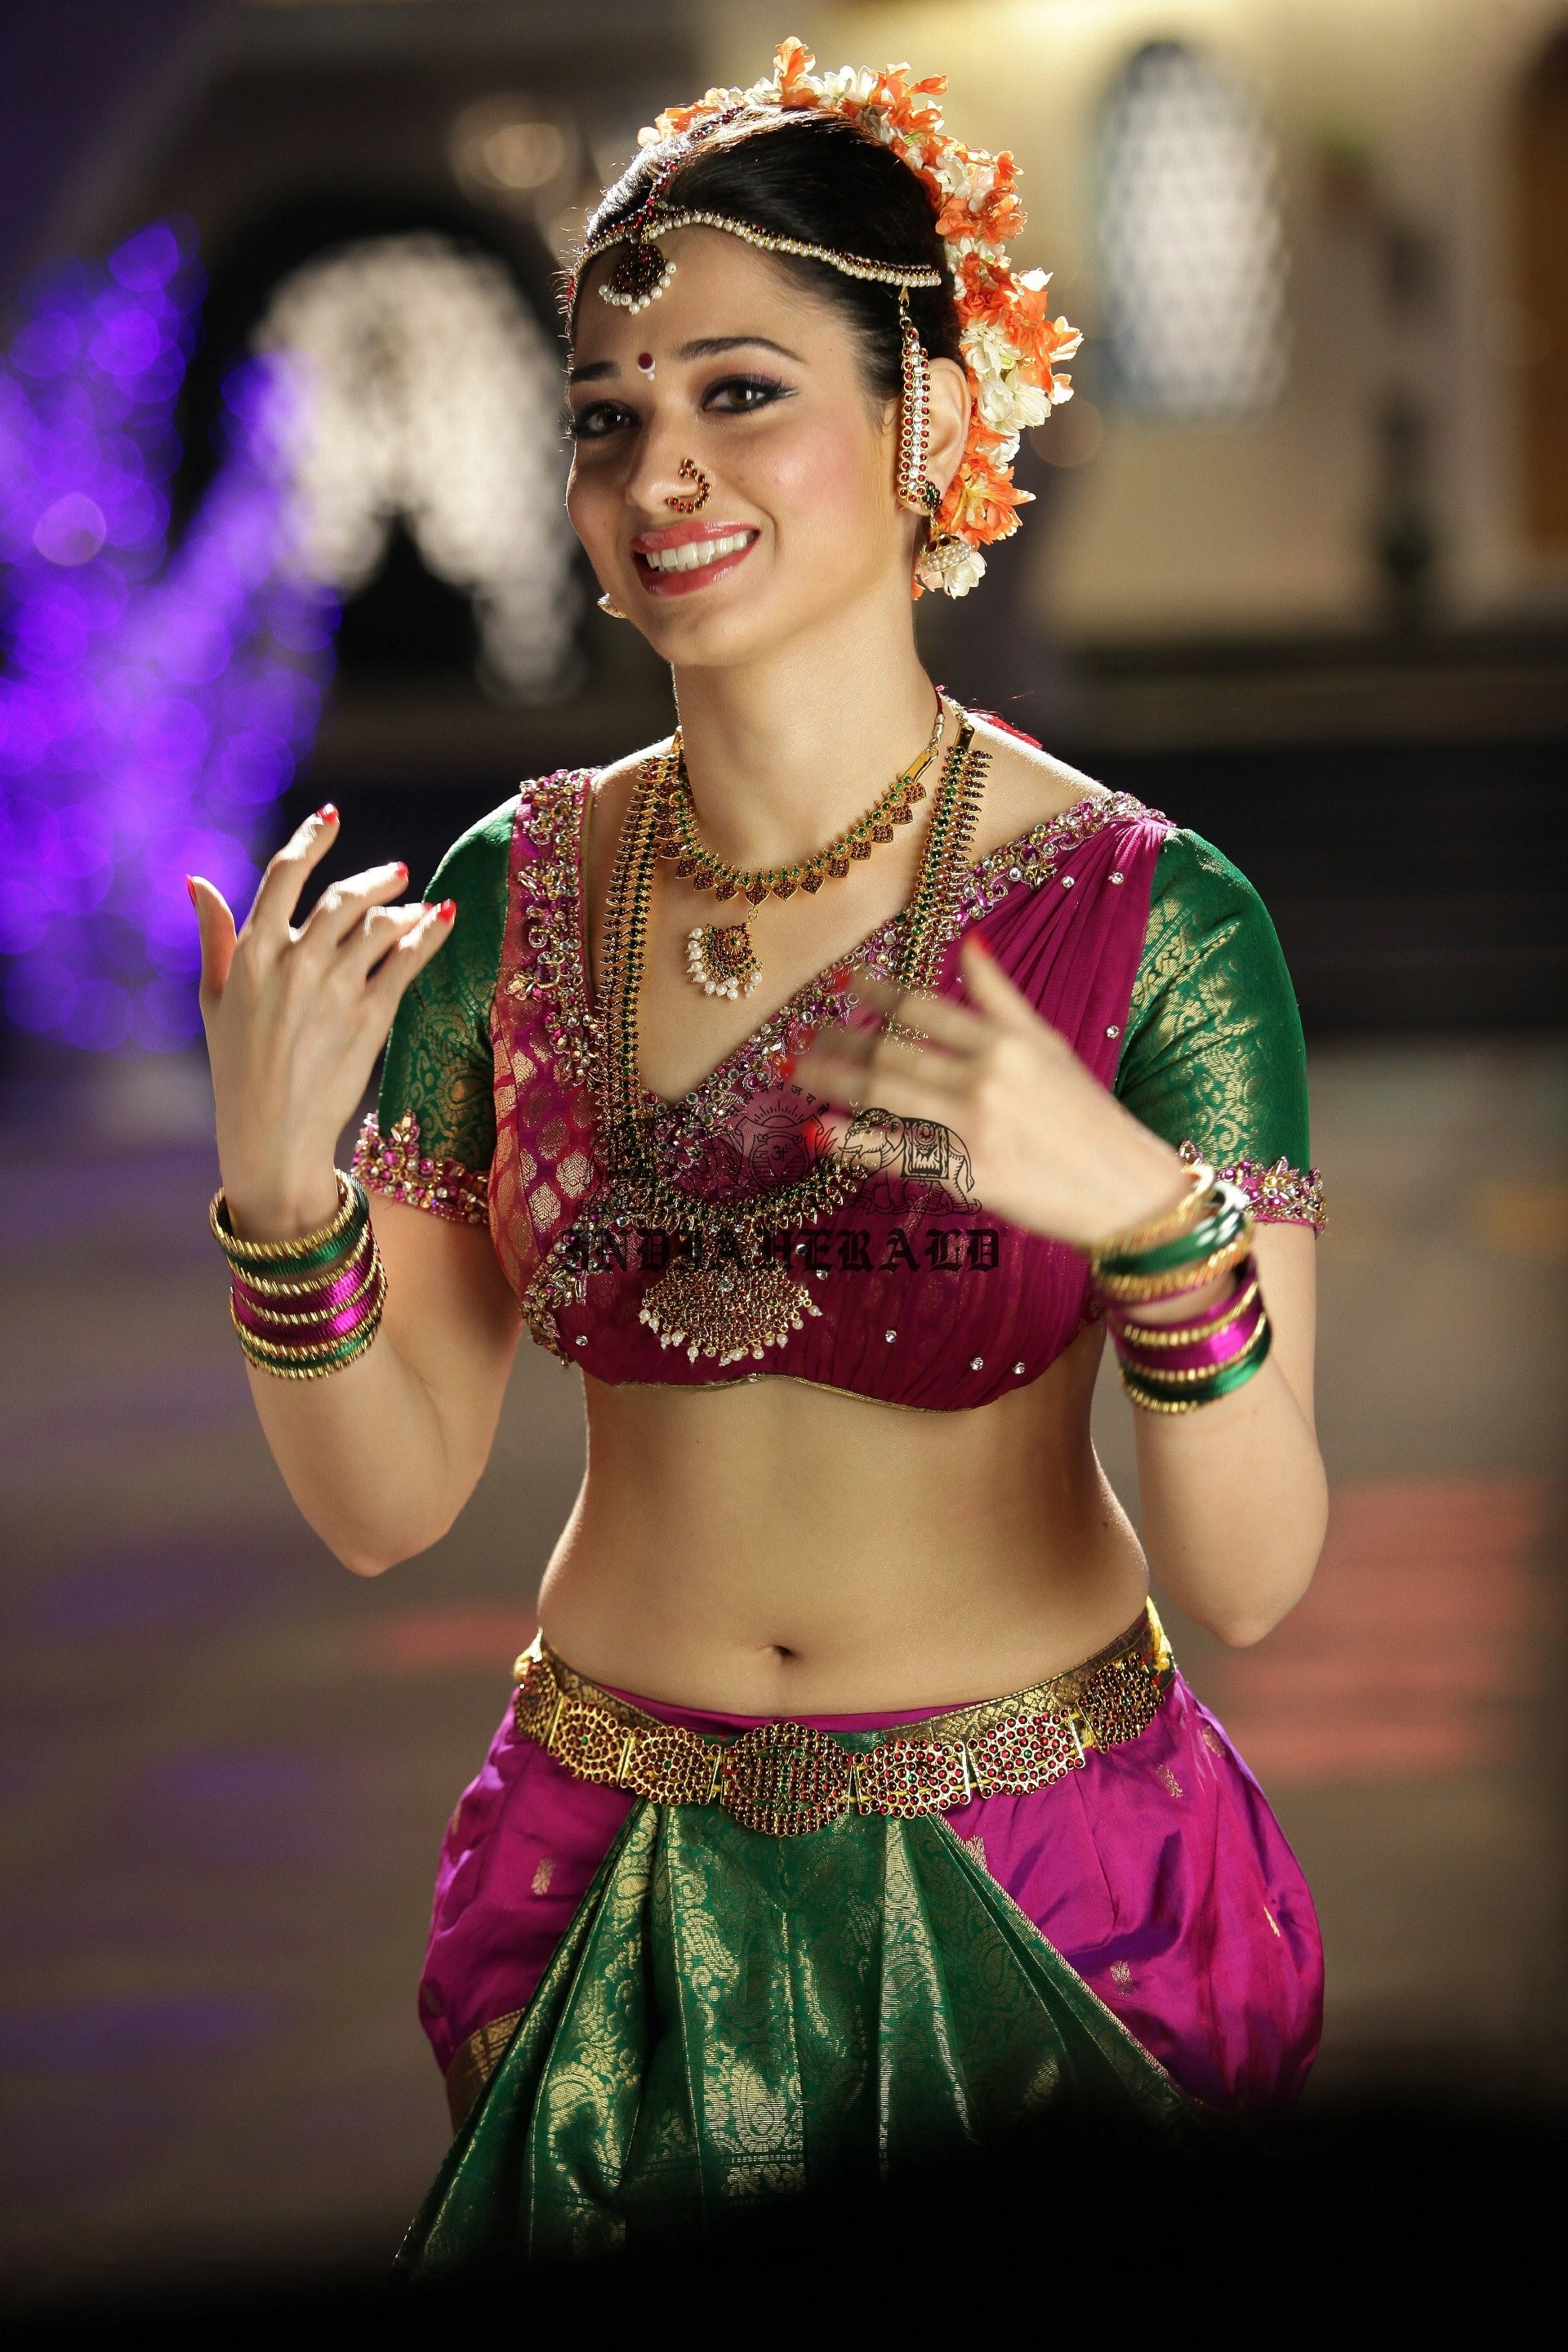 Hottest High Clarity Photos of Tamanna in Saree exposing her navel and midriff Set 2